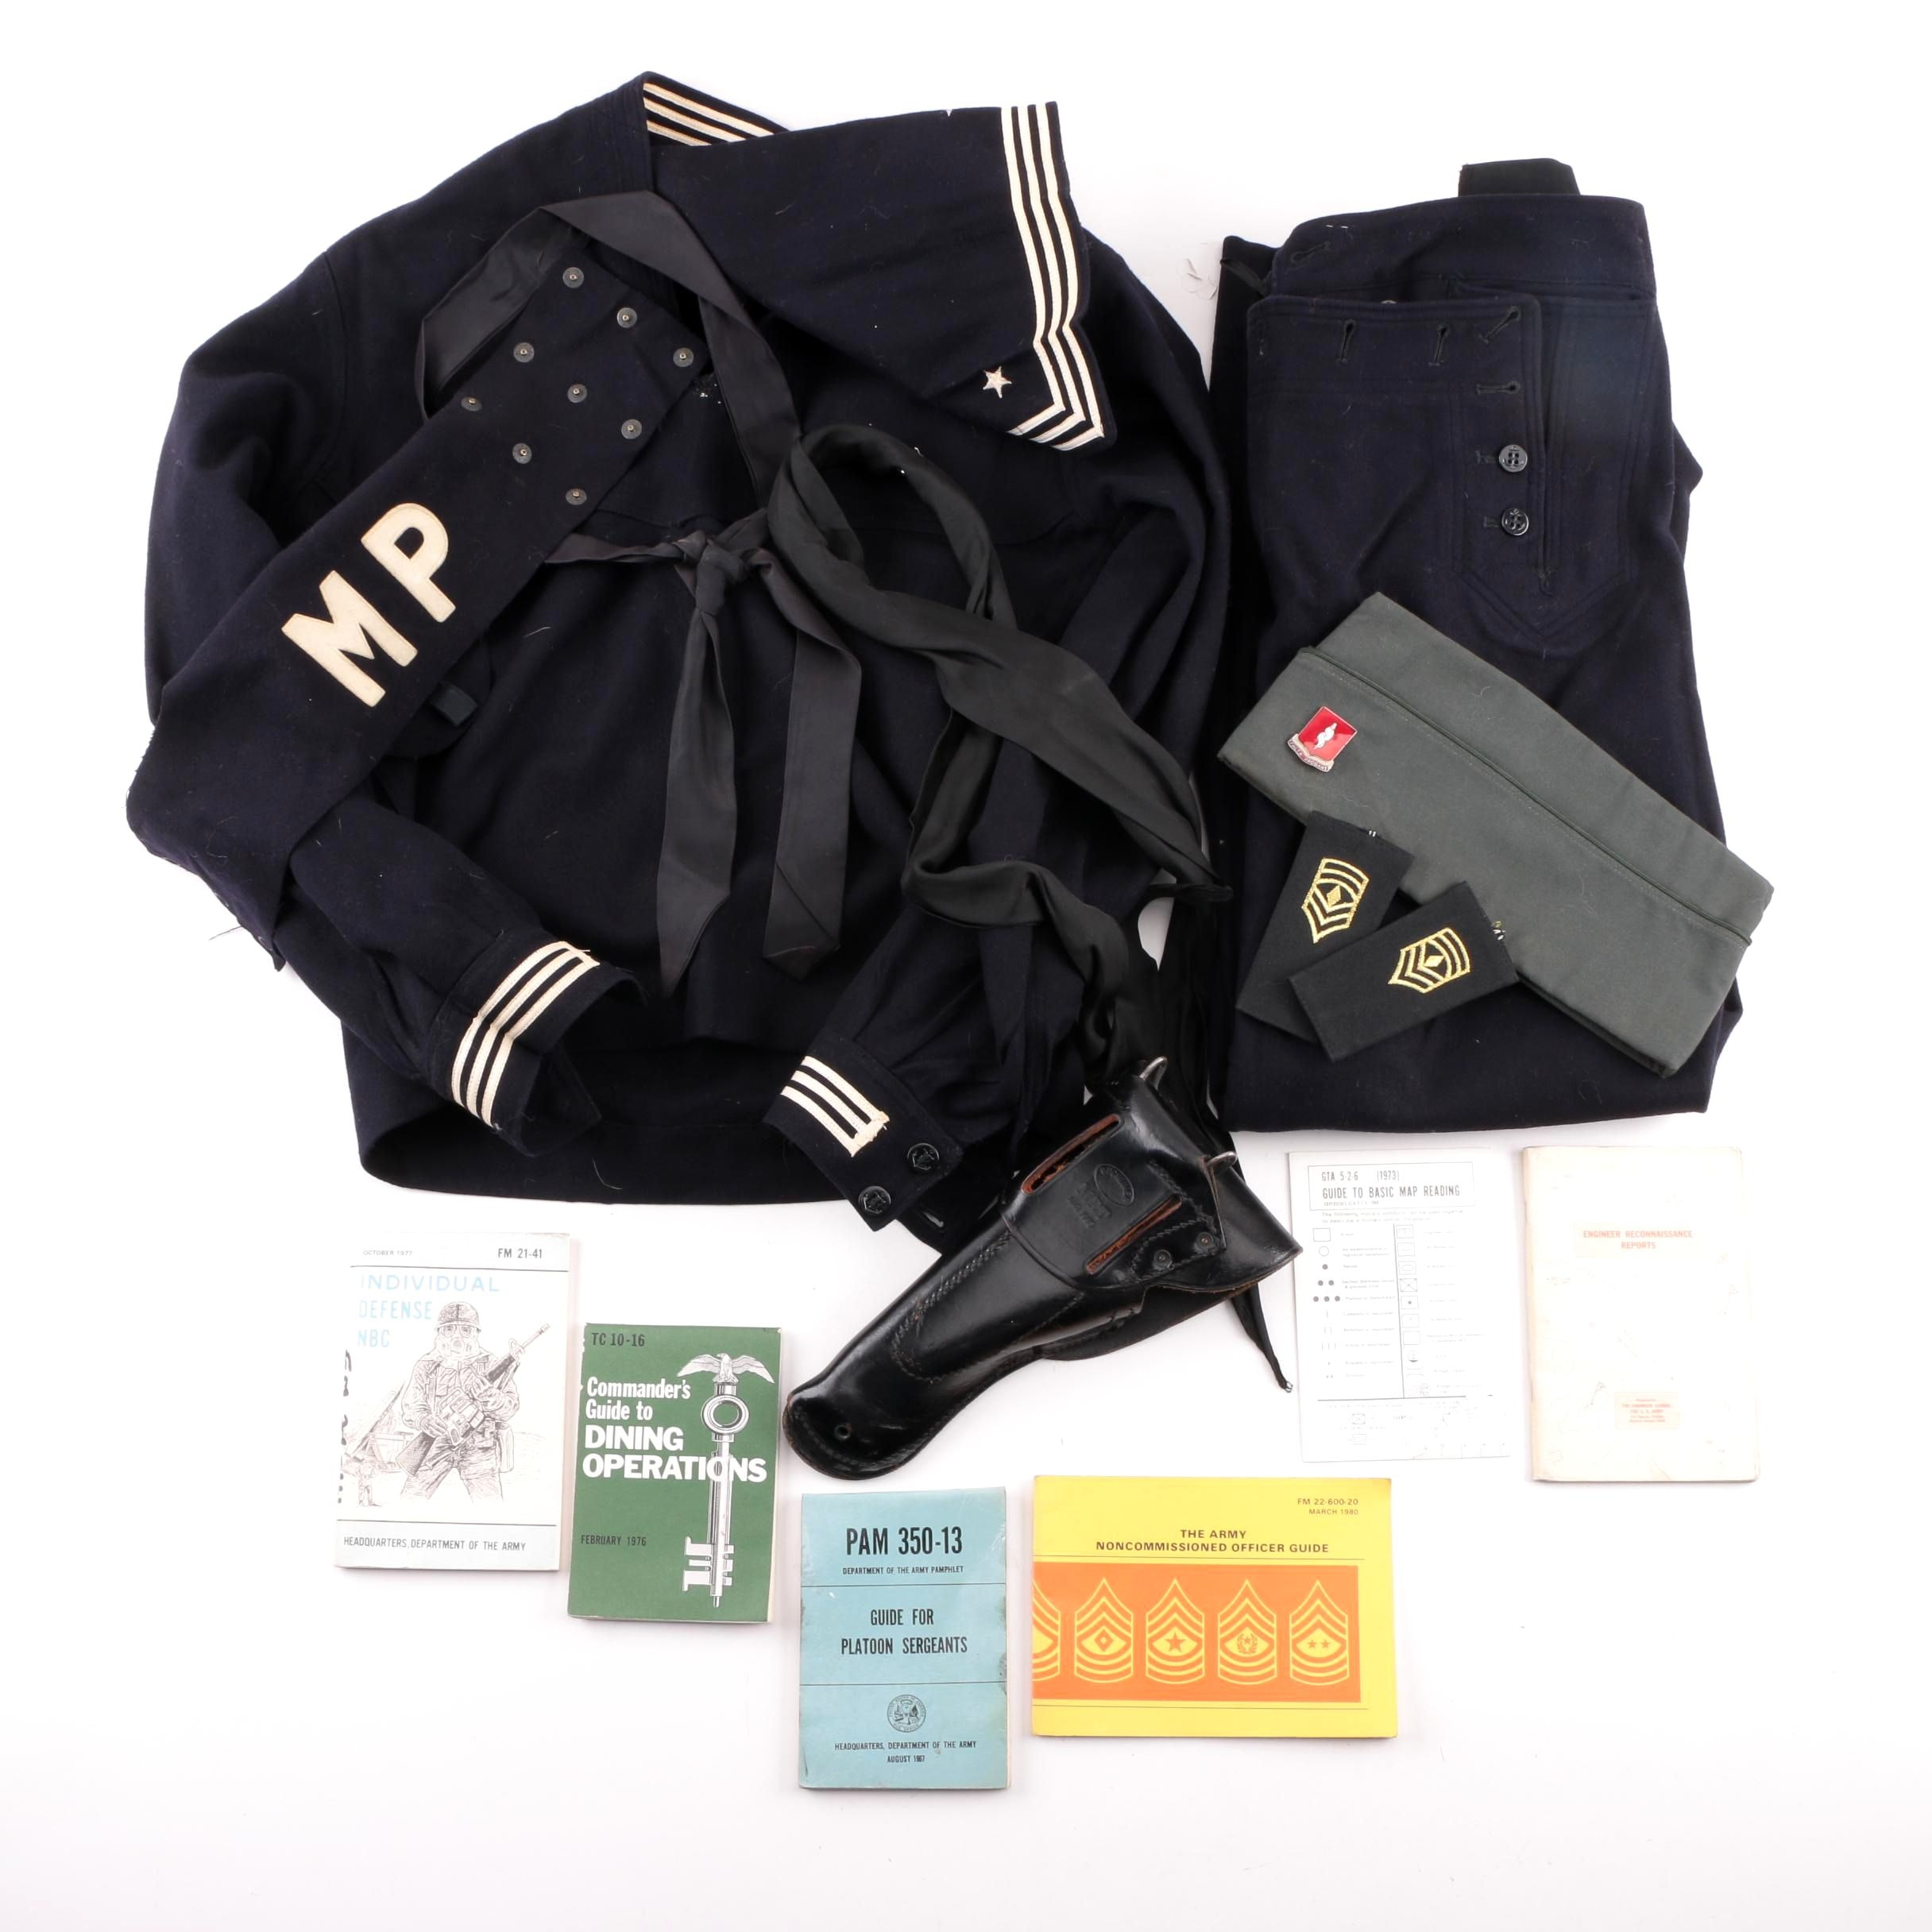 Vintage U.S.S. Molala Navy Uniform with Leather Holster and Other Accessories